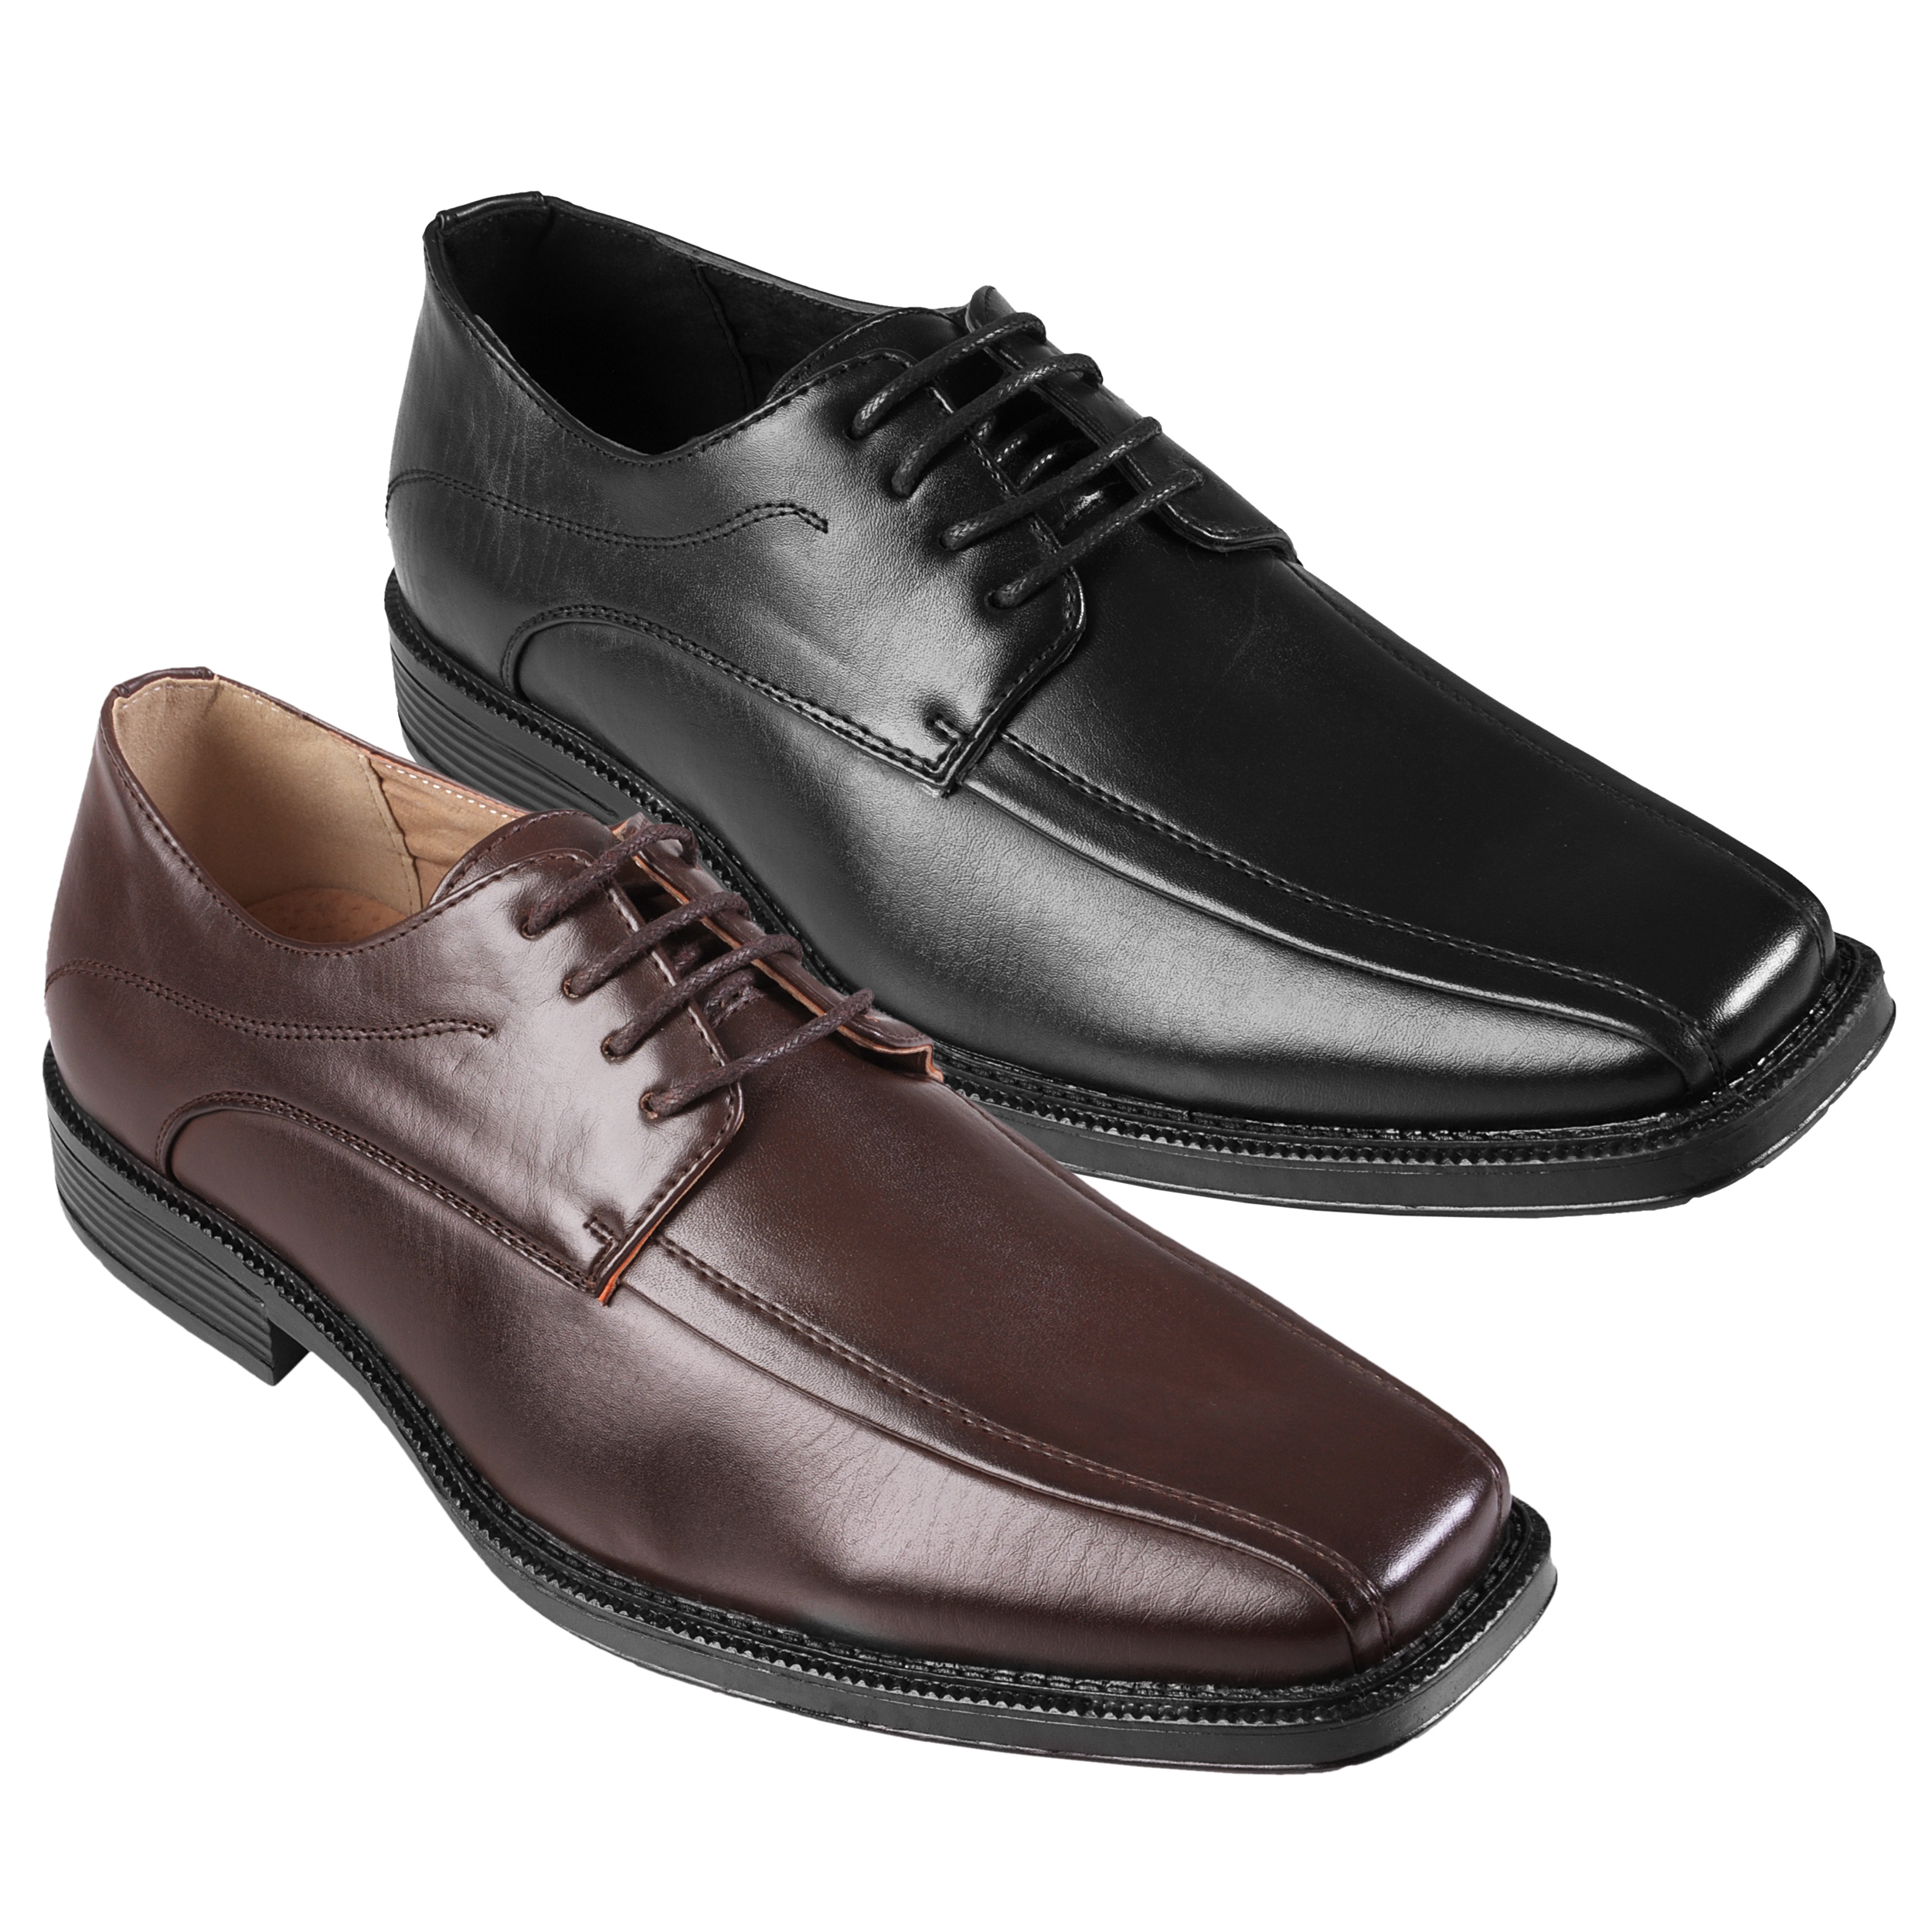 New Imitate Snake Leather Men Oxford Shoes Pointed Toes Solid Carved Flower Gradient Male Dress Shoes Smart Casual Lace Up Shoes Fragrant Aroma Men's Shoes